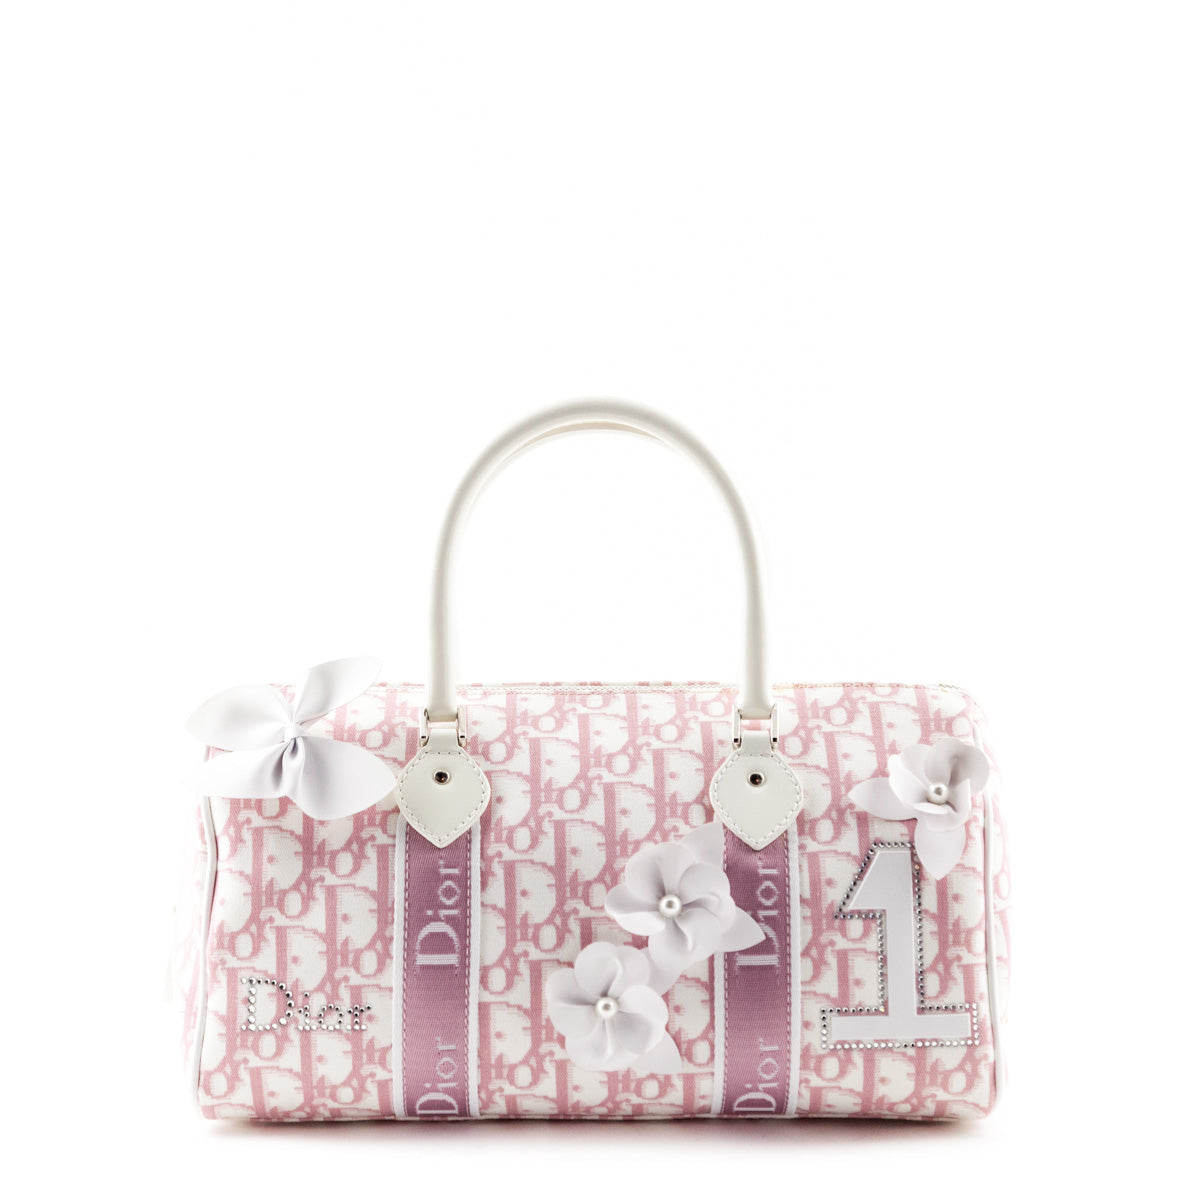 6dc2766a0b Dior Pink Diorissimo Canvas Boston Girly Flower Tote - LOVE that BAG -  Preowned Authentic Designer ...